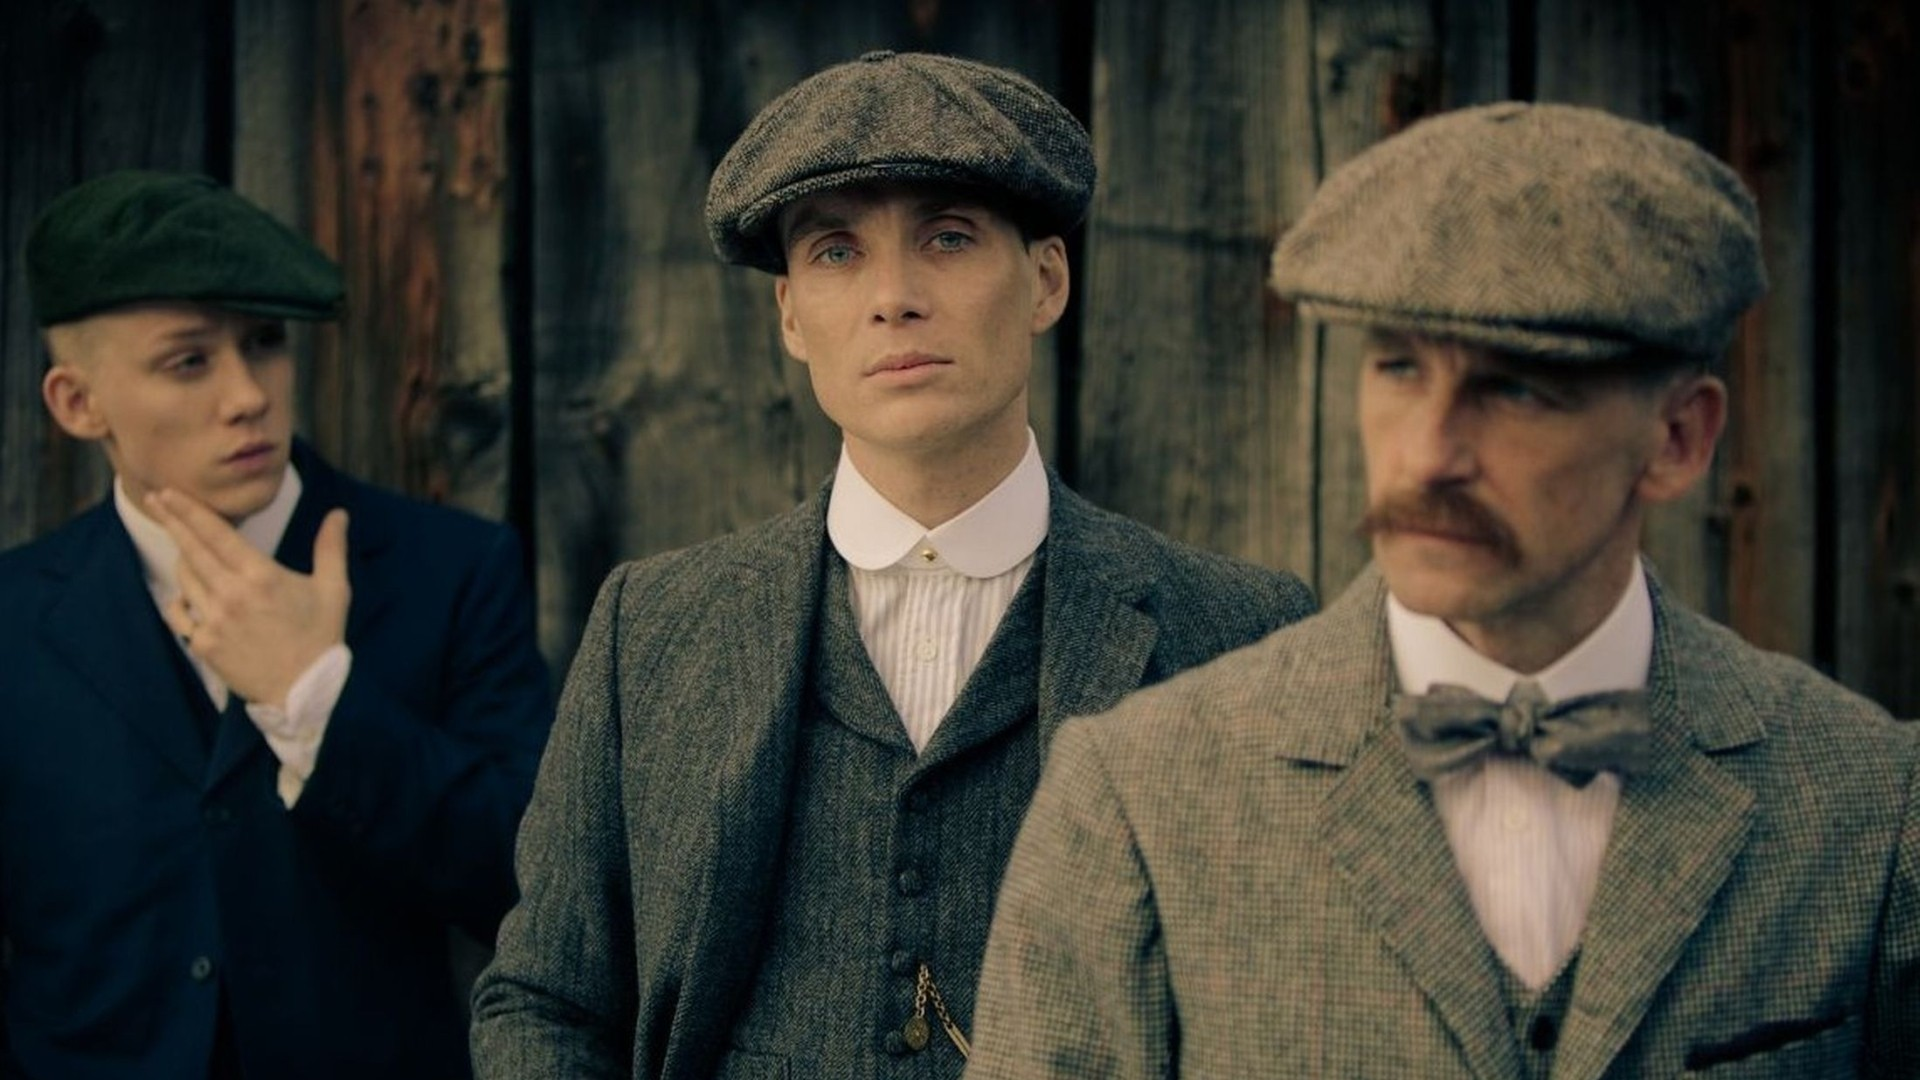 The Shelbys of the Peaky Blinders